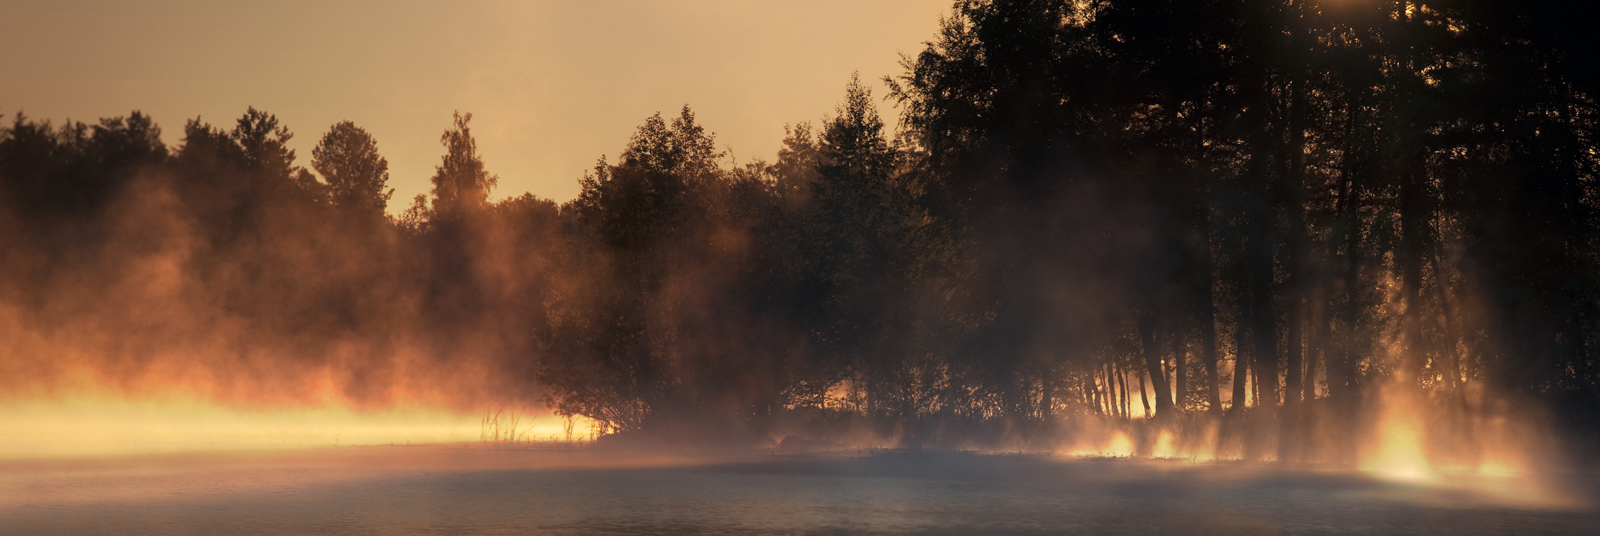 Morning Mist Panorama by MikkoLagerstedt